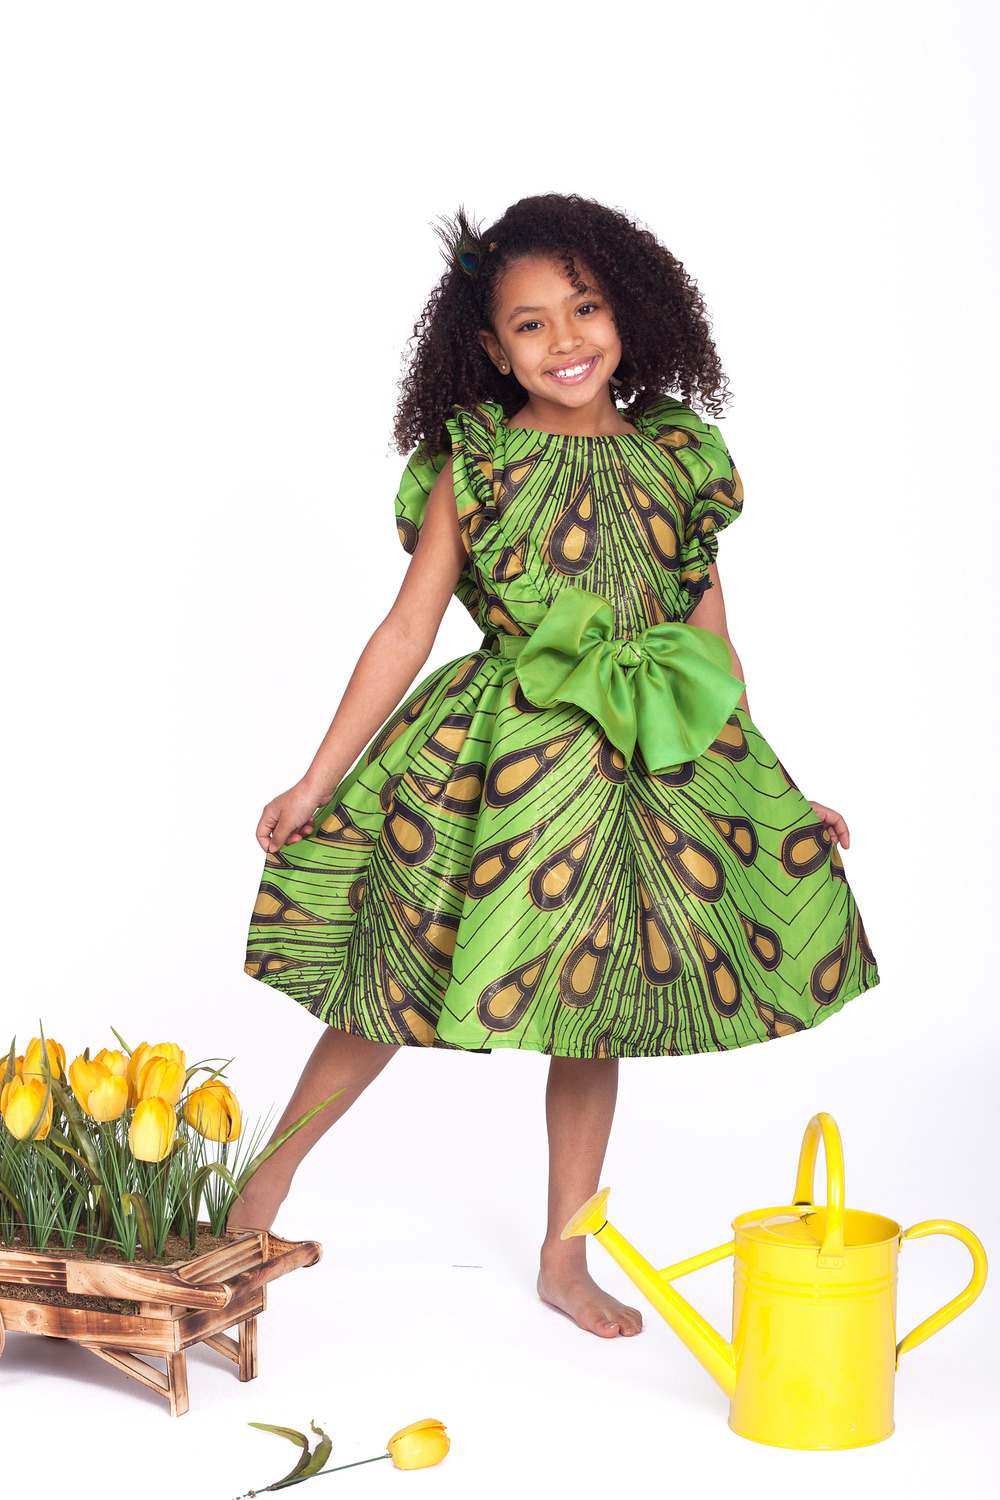 Find kids dress from a vast selection of Fashion. Get great deals on eBay!